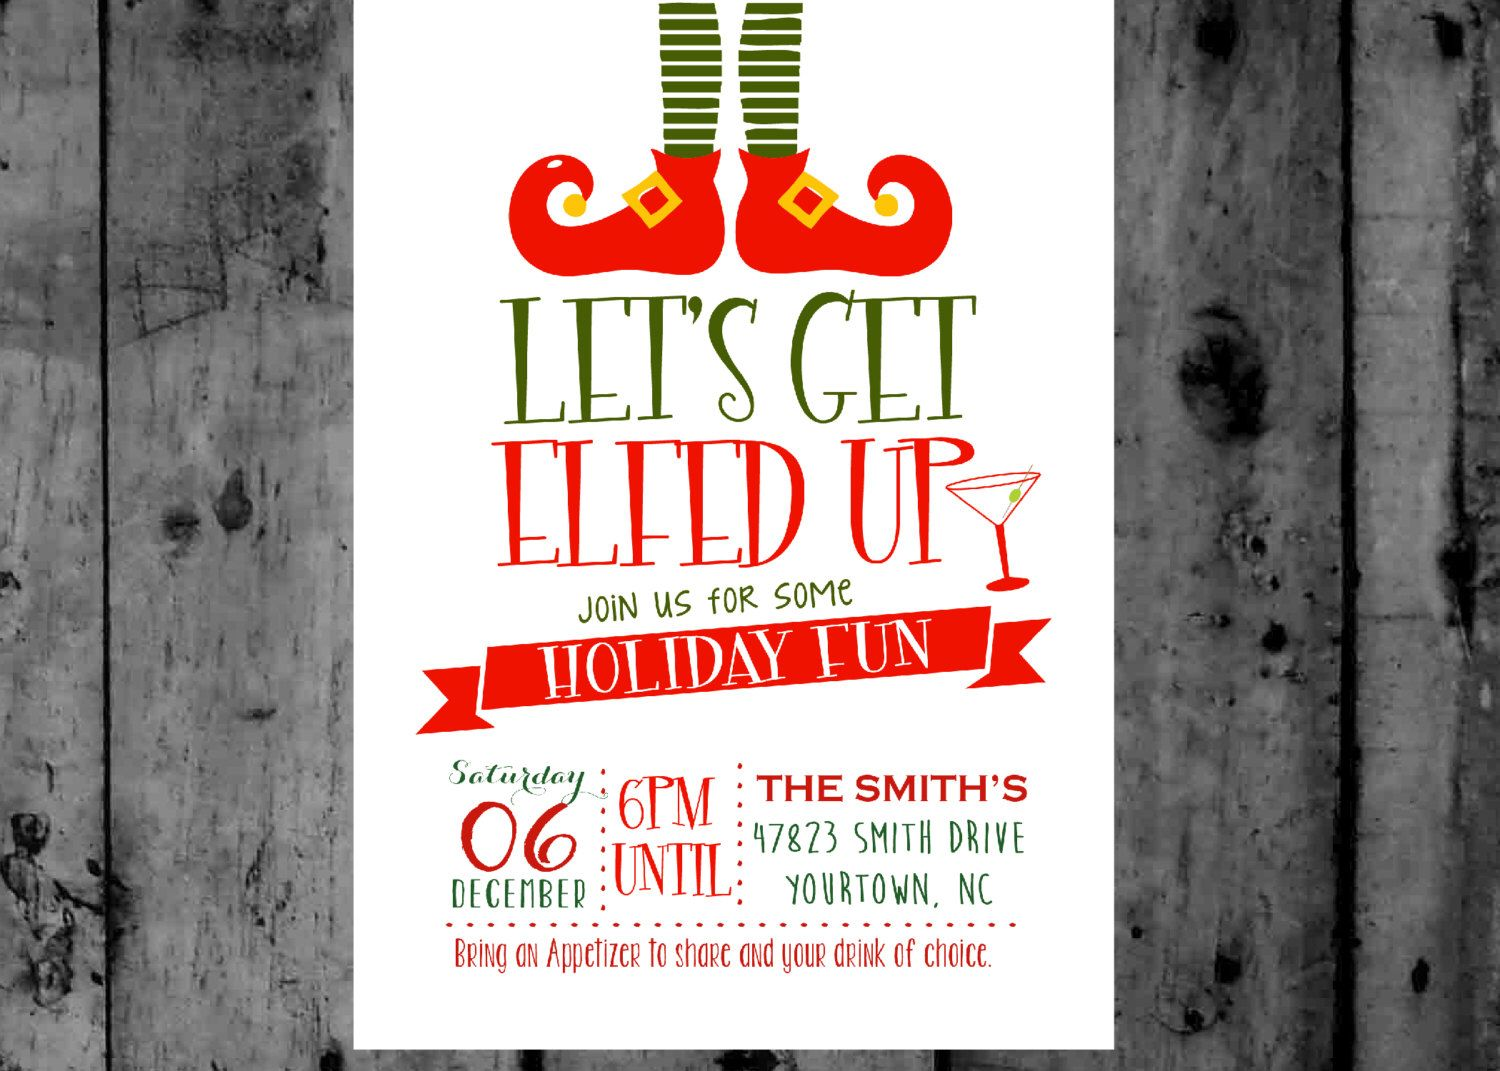 Neighborhood Christmas Party Ideas Part - 25: Wording For Neighborhood Christmas Party Invitations Let U S Get Elfed Up Christmas  Party Printable Invitation By